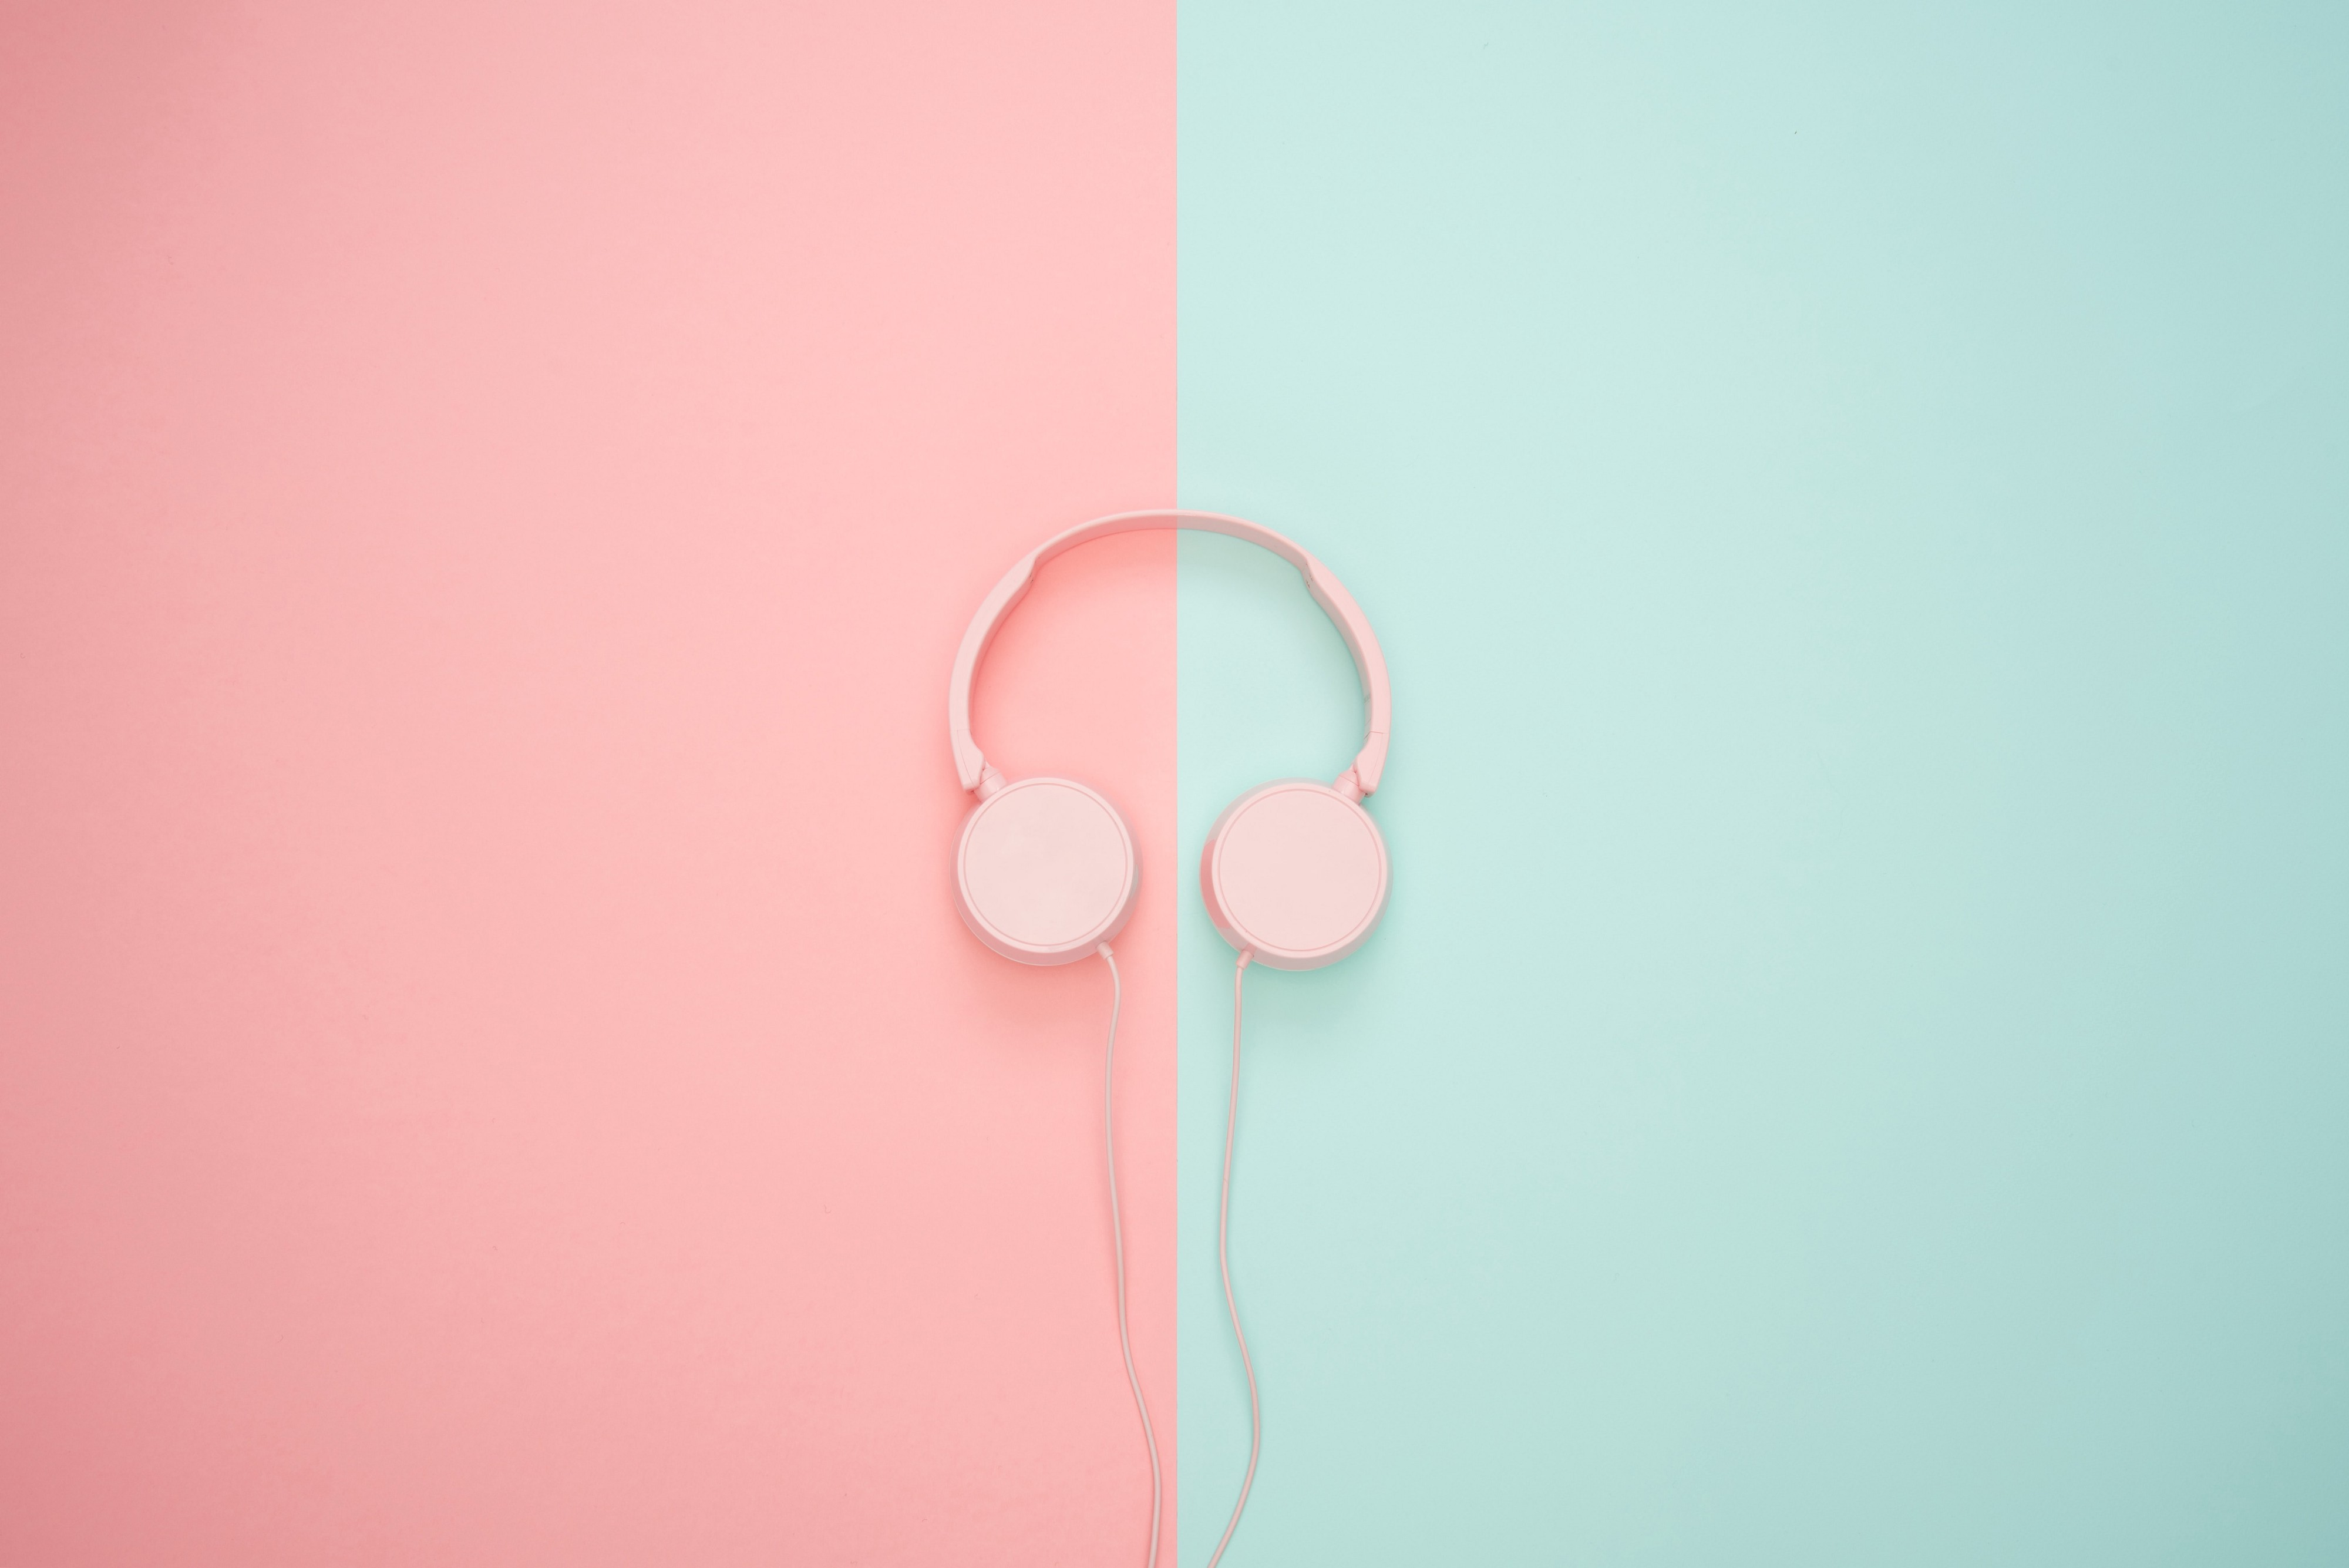 pink headphones on a pink and teal background